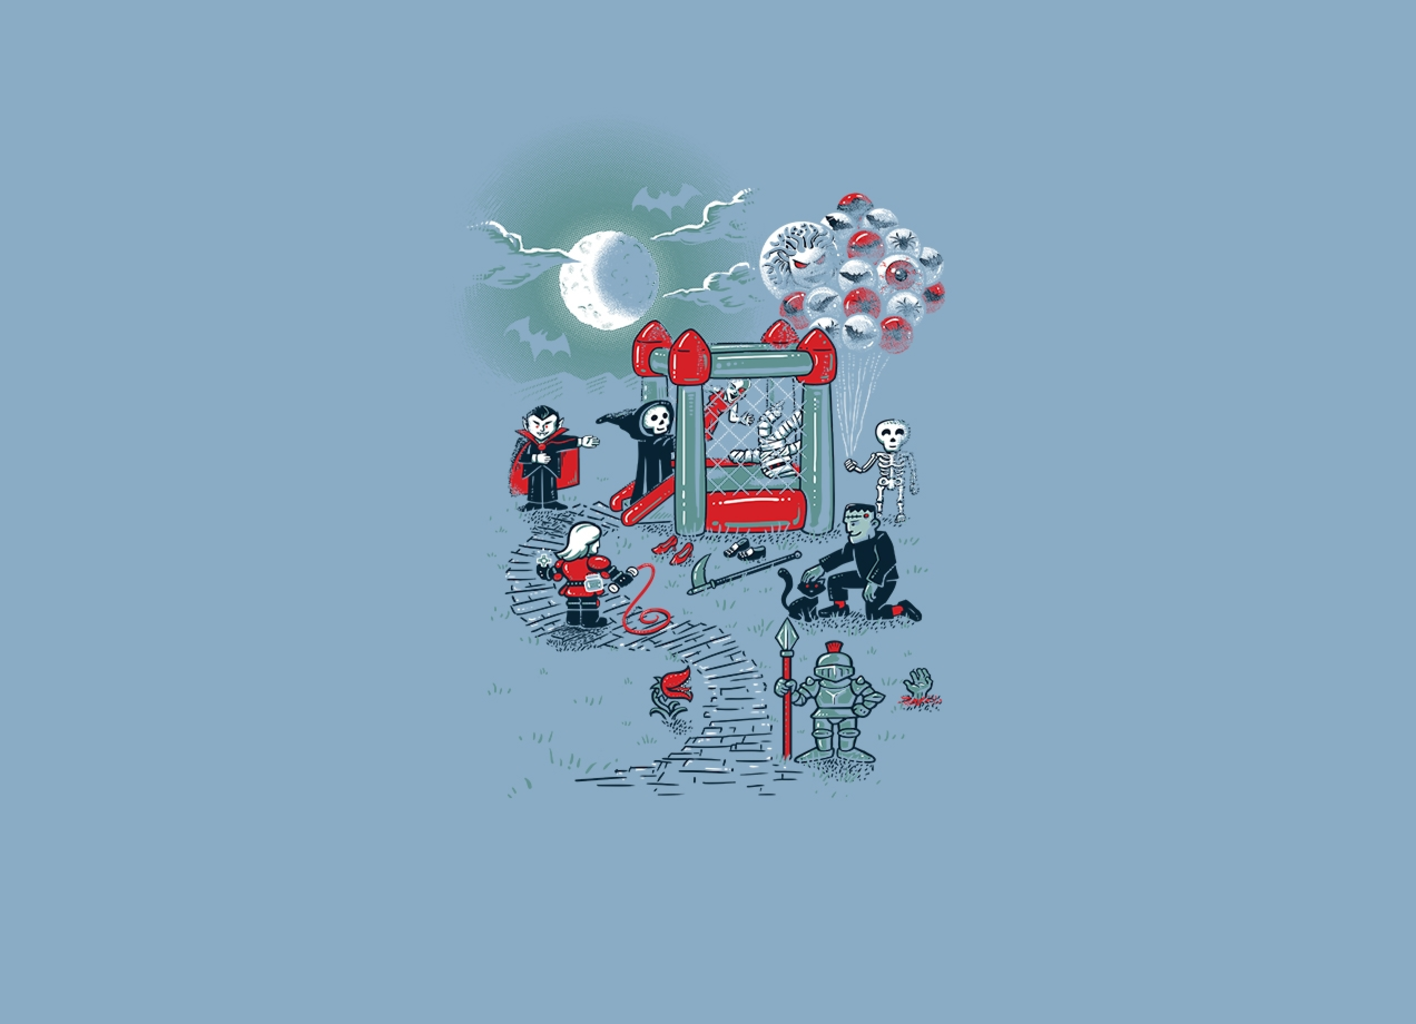 Threadless: THE FUN IS HERE IN CASTLEMANIA